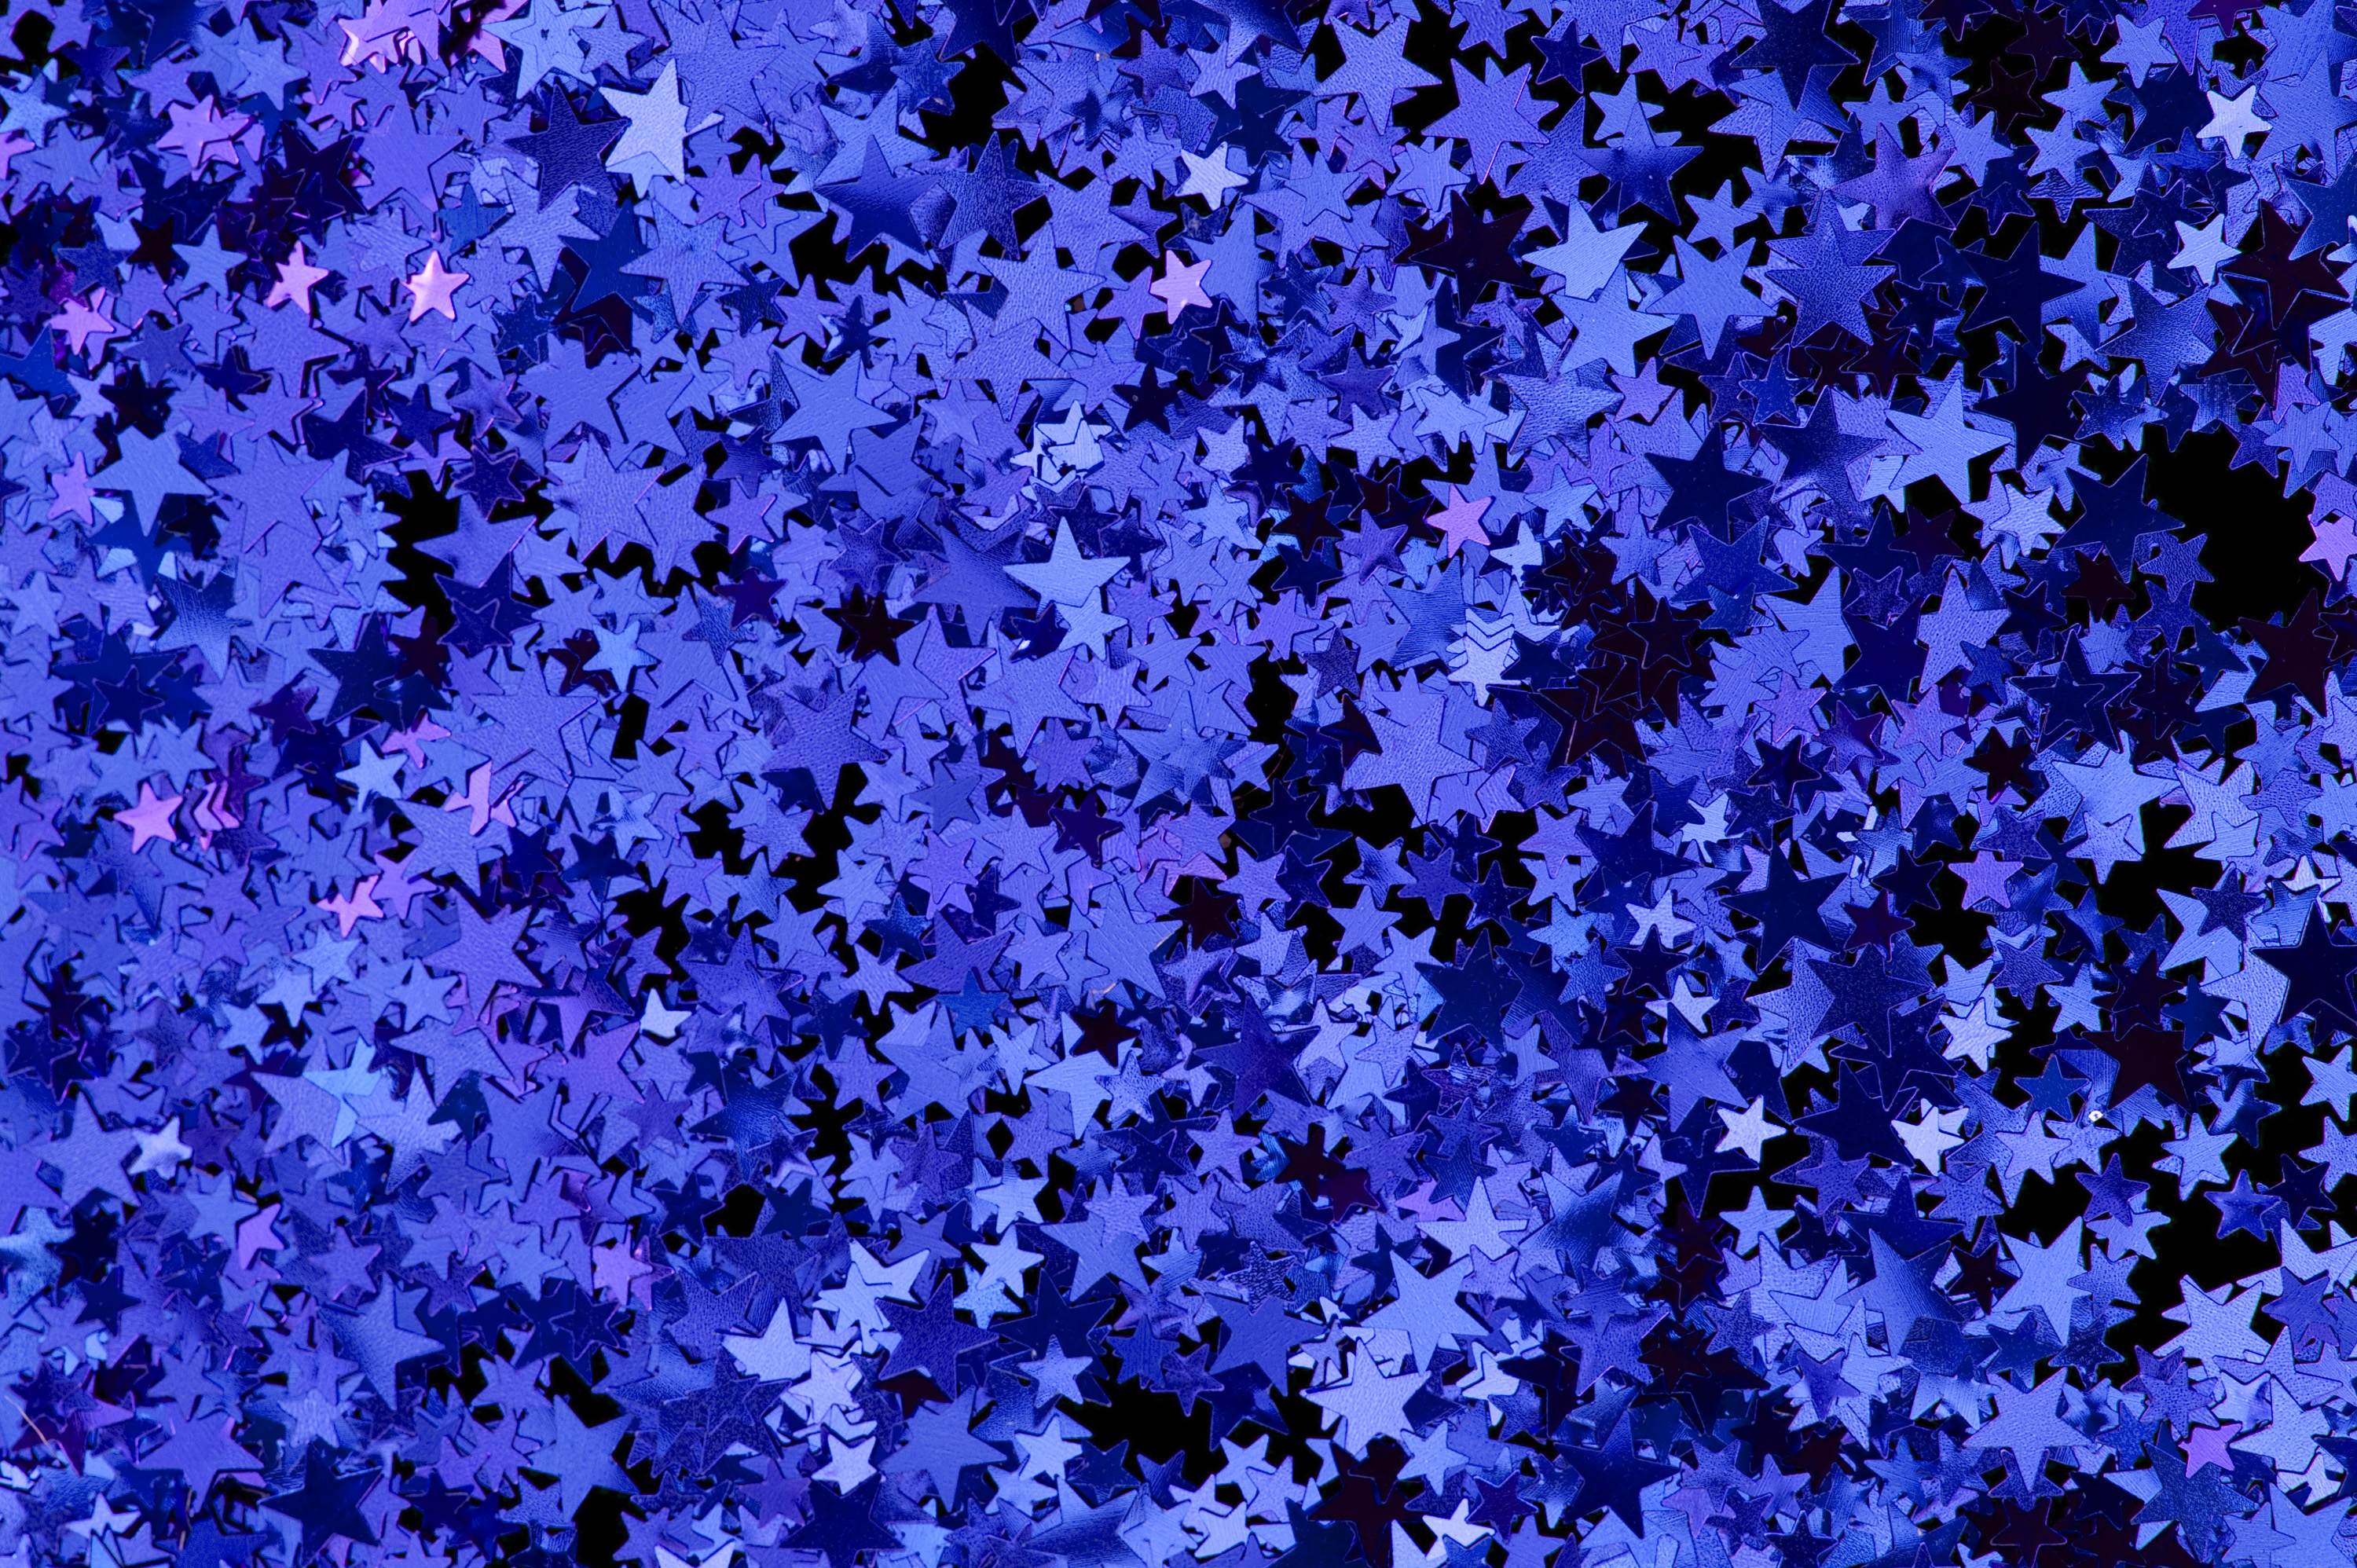 a colorful background of blue and purple star shapes